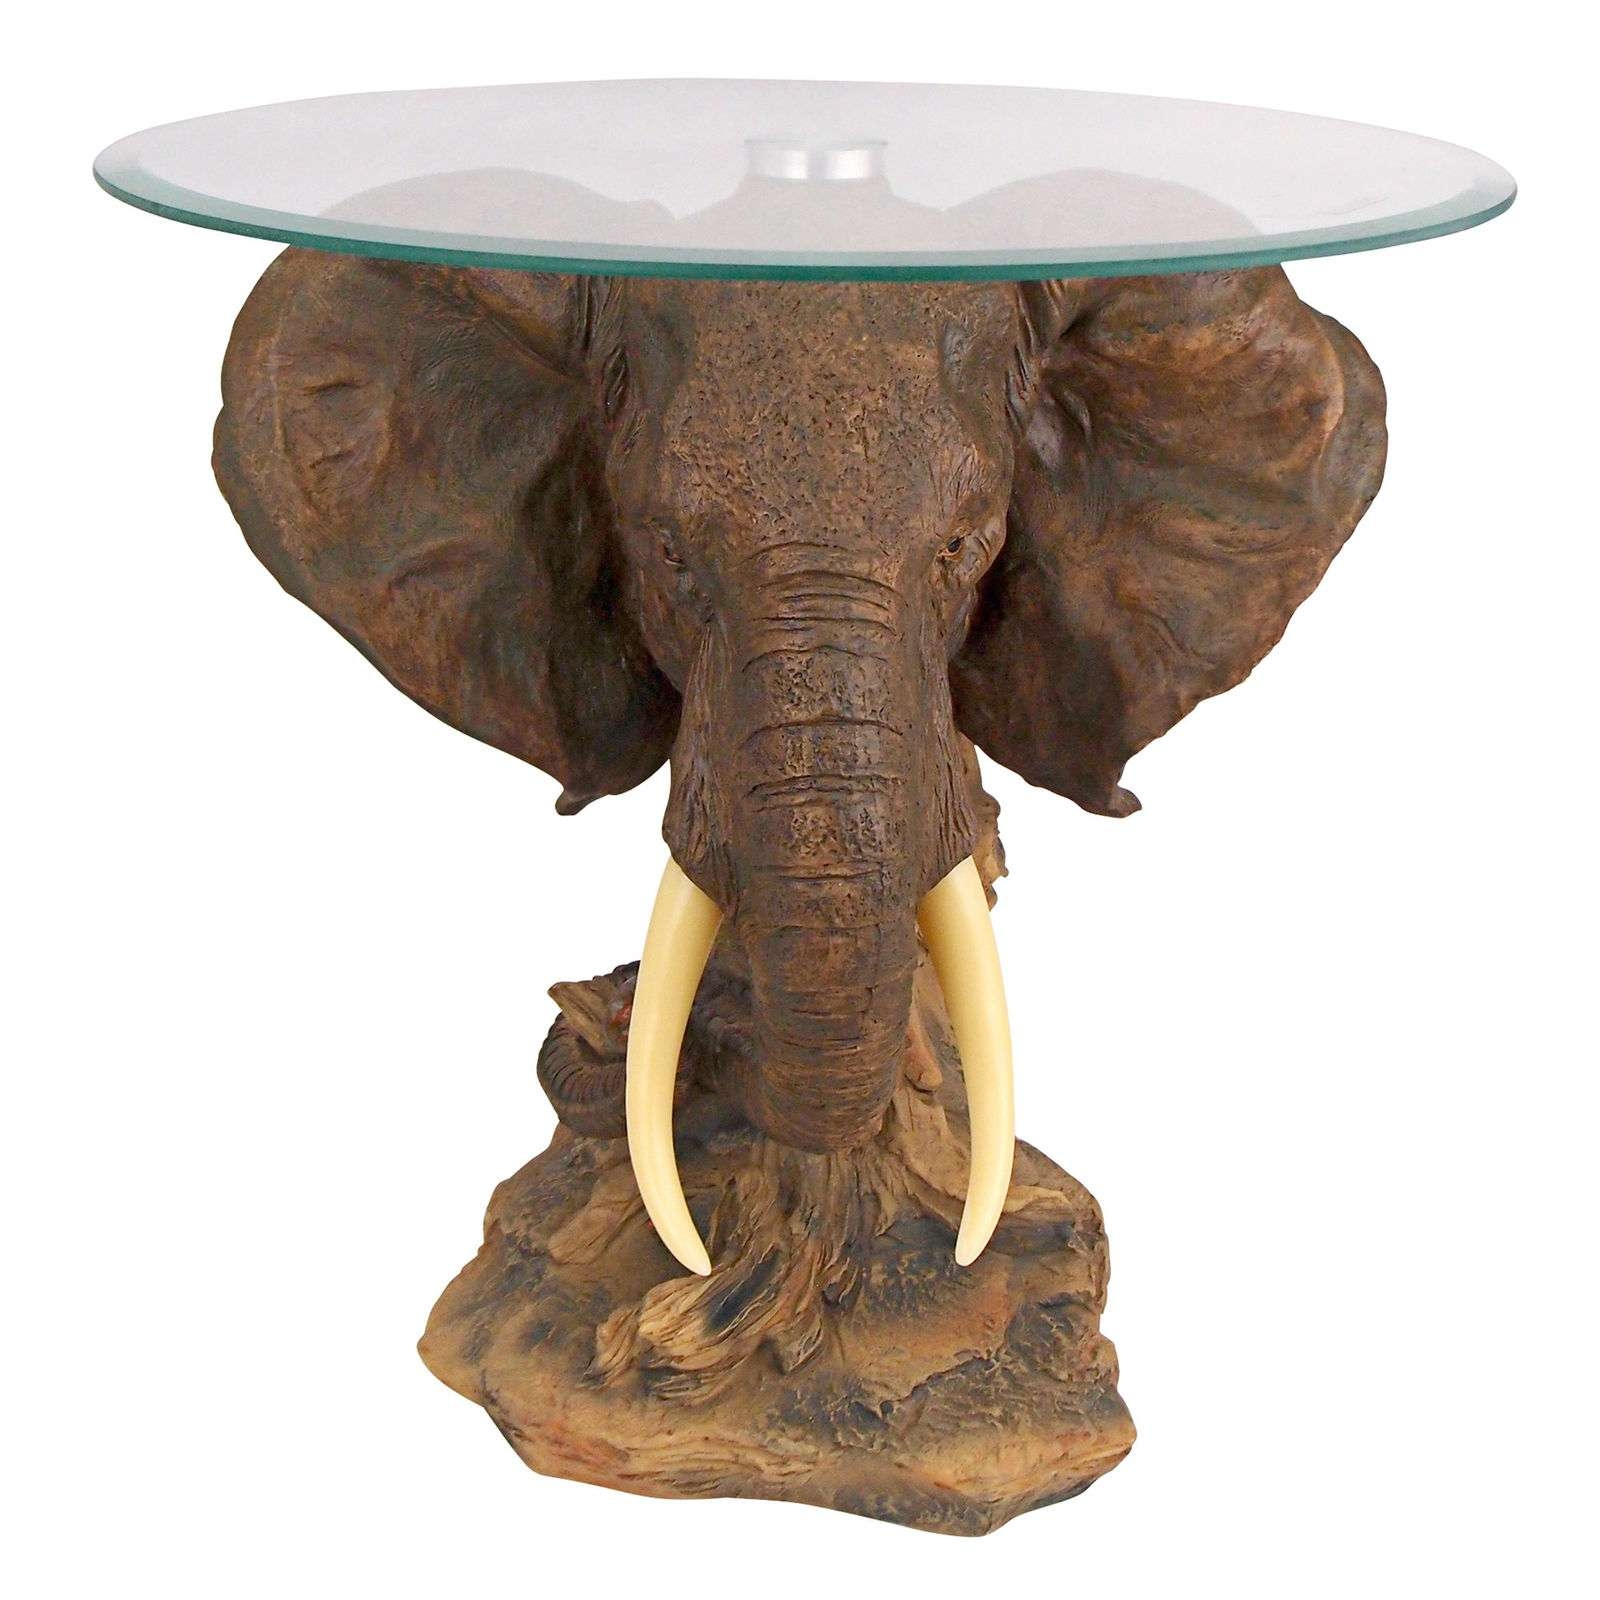 Well Known Elephant Coffee Tables With Regard To Design Toscano Lord Earl Houghton's Trophy Elephant Coffee Table (View 13 of 20)